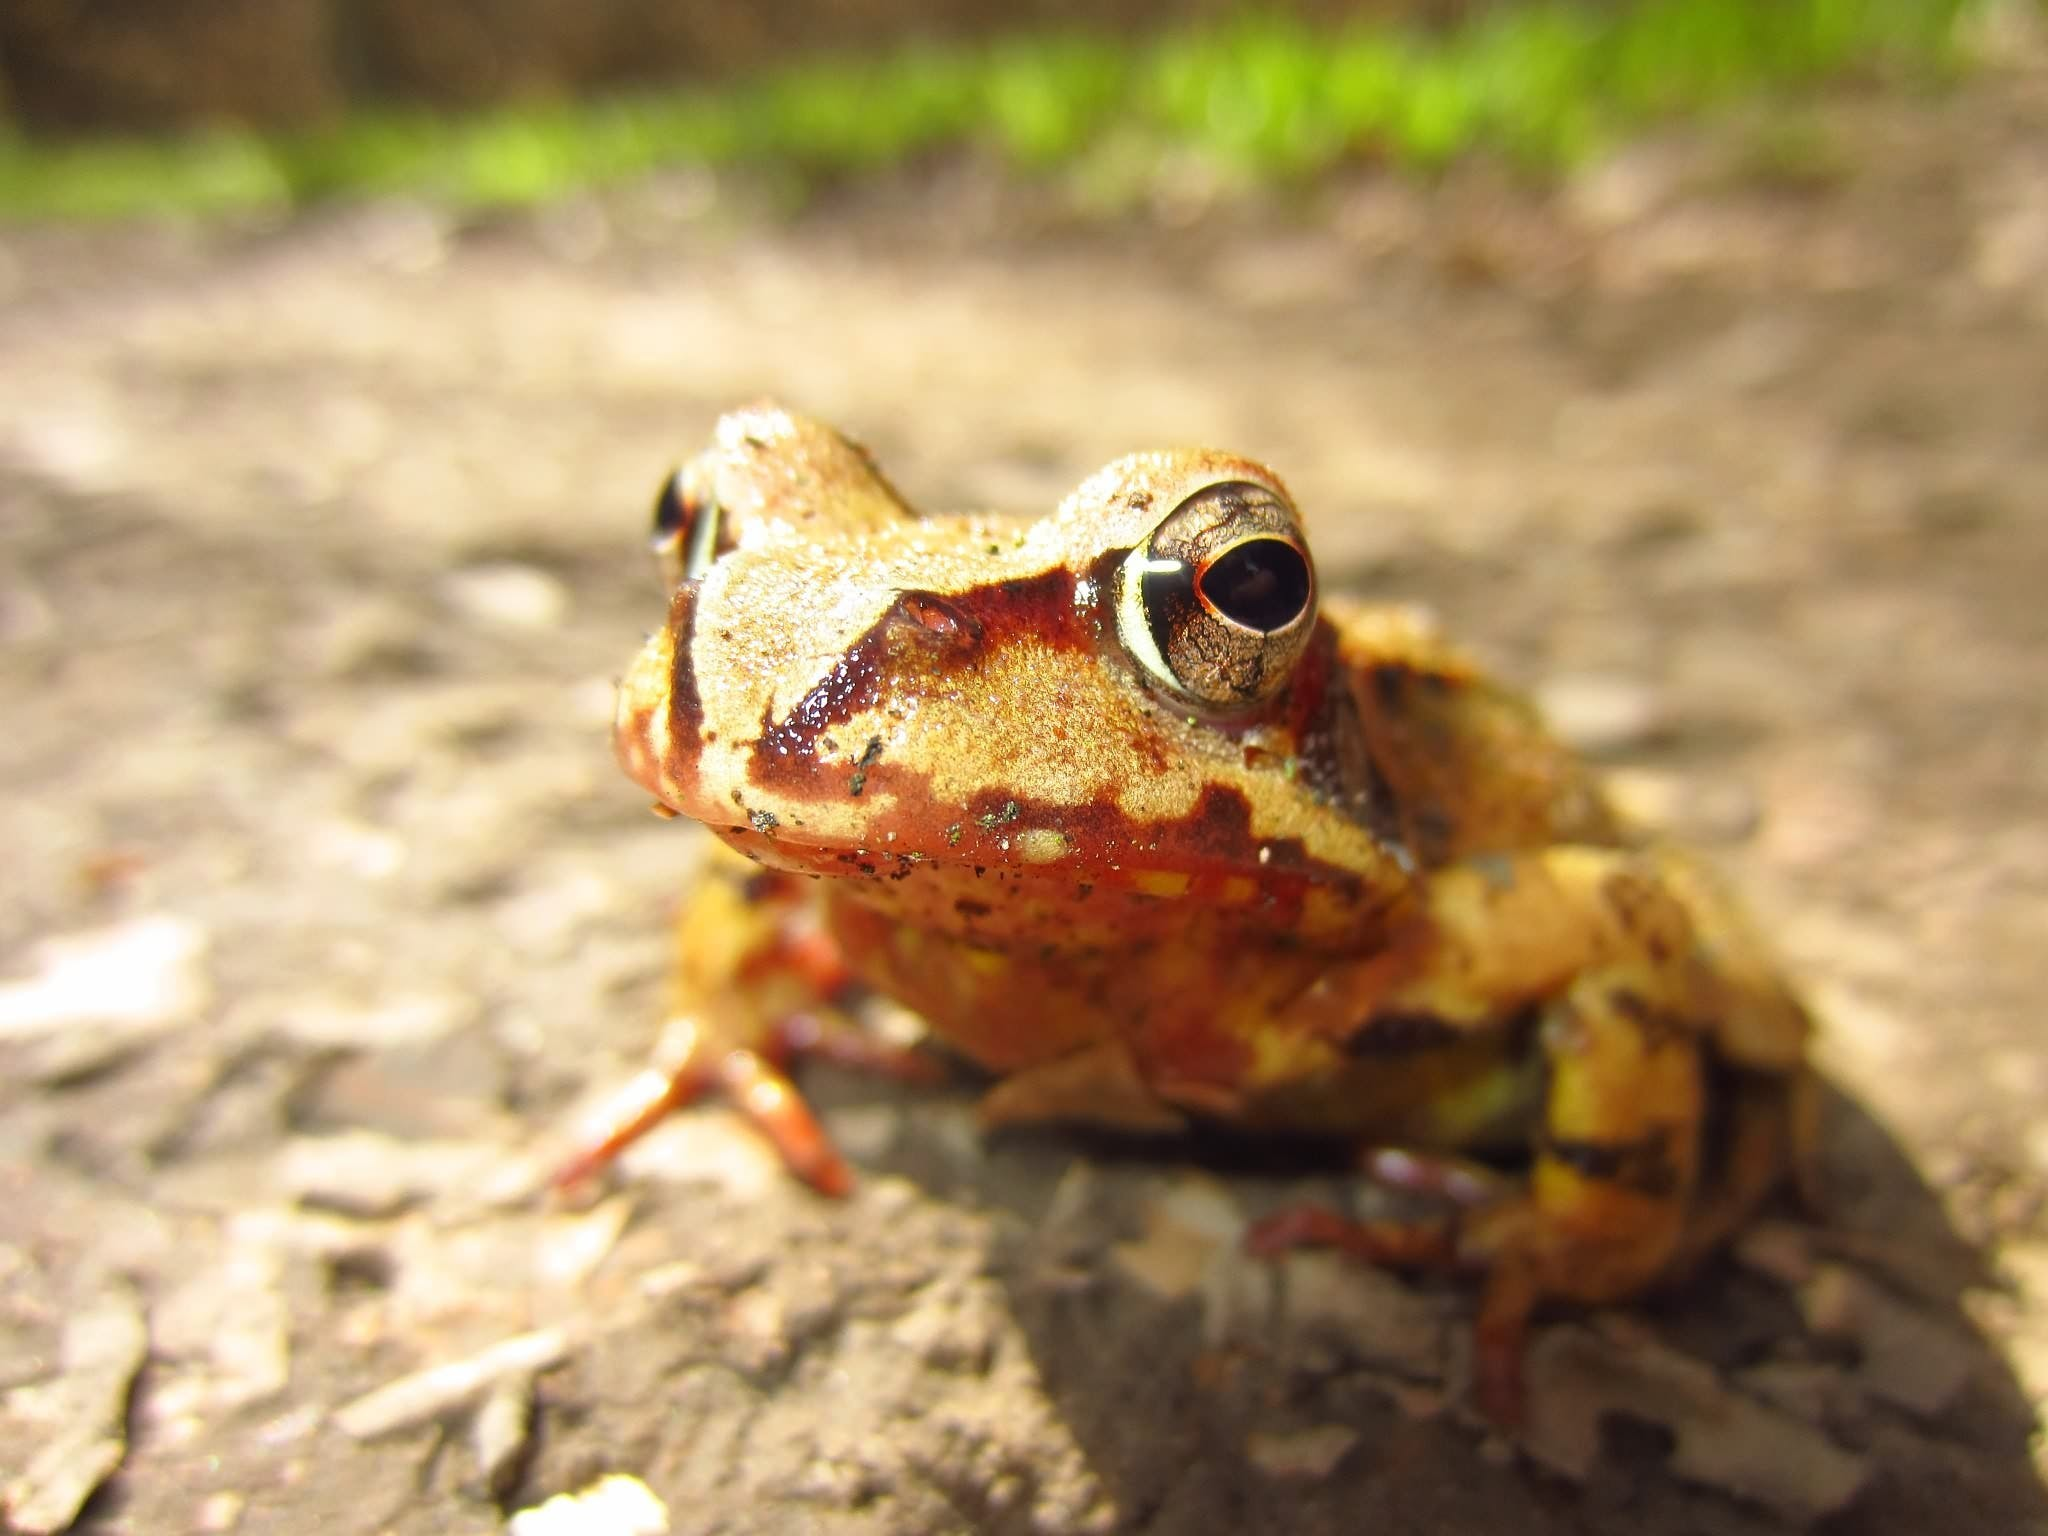 Macro Shot of Yellow and Brown Frog on Gray Asphalt Road during Daytime